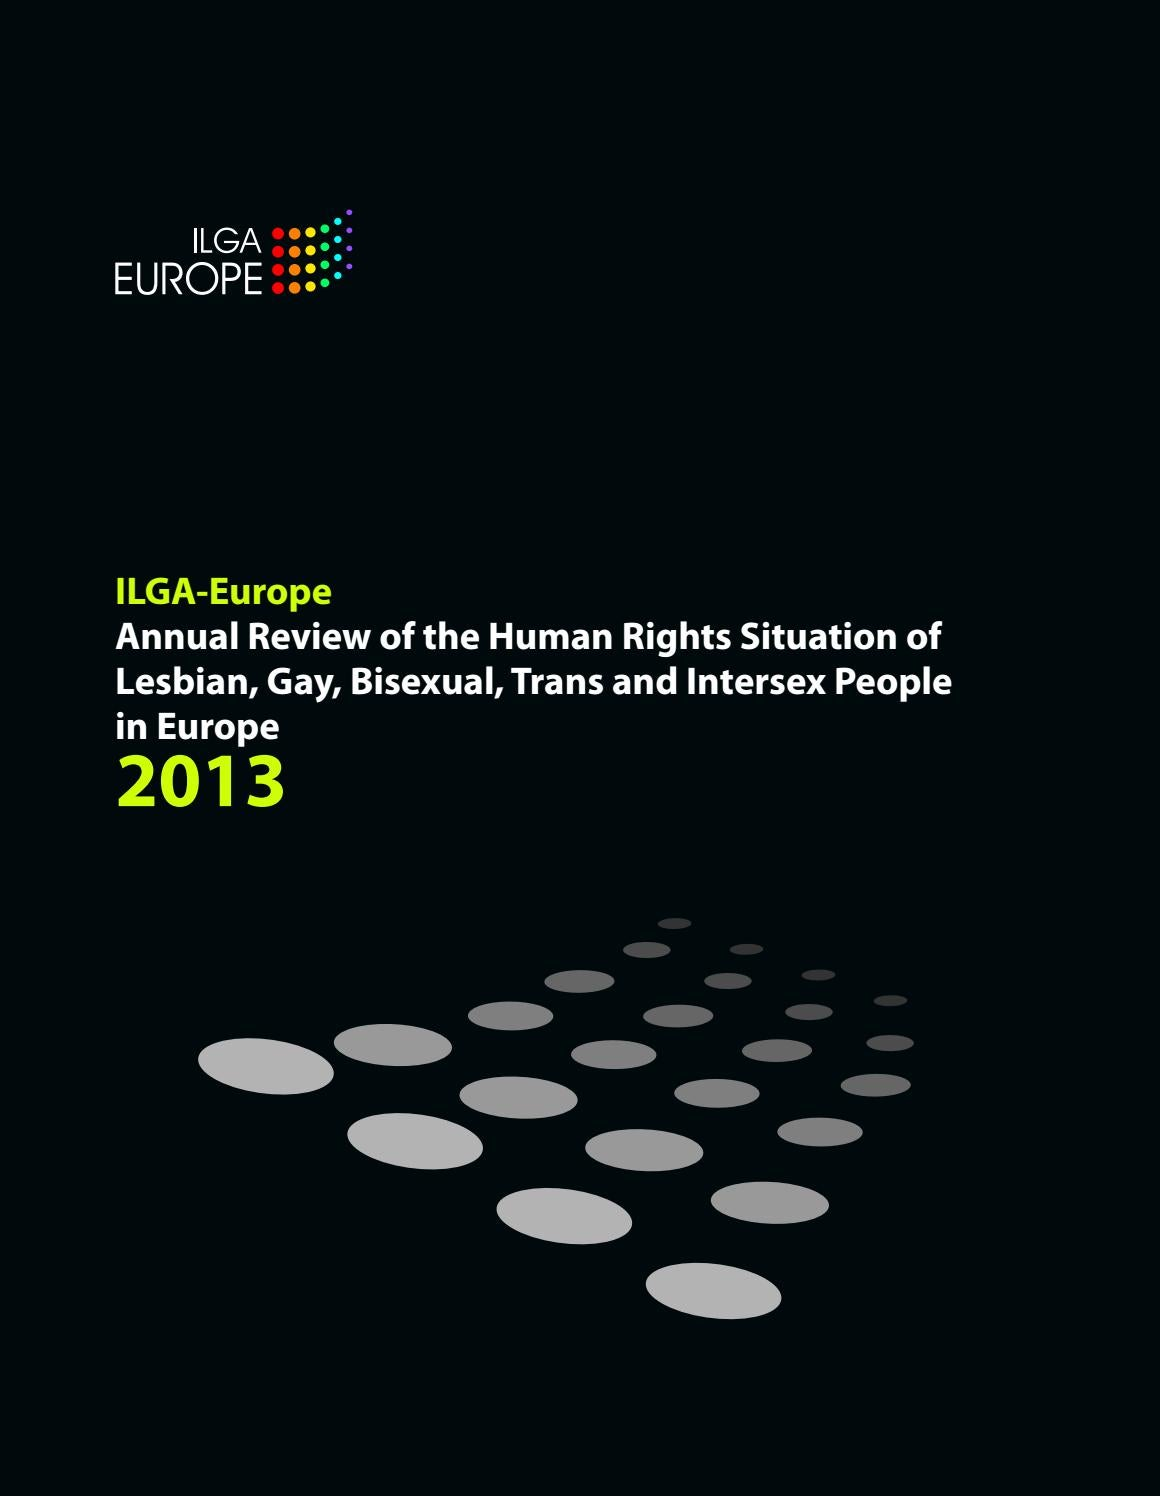 2013 Annual Review of the Human Rights Situation of Lesbian Gay ...